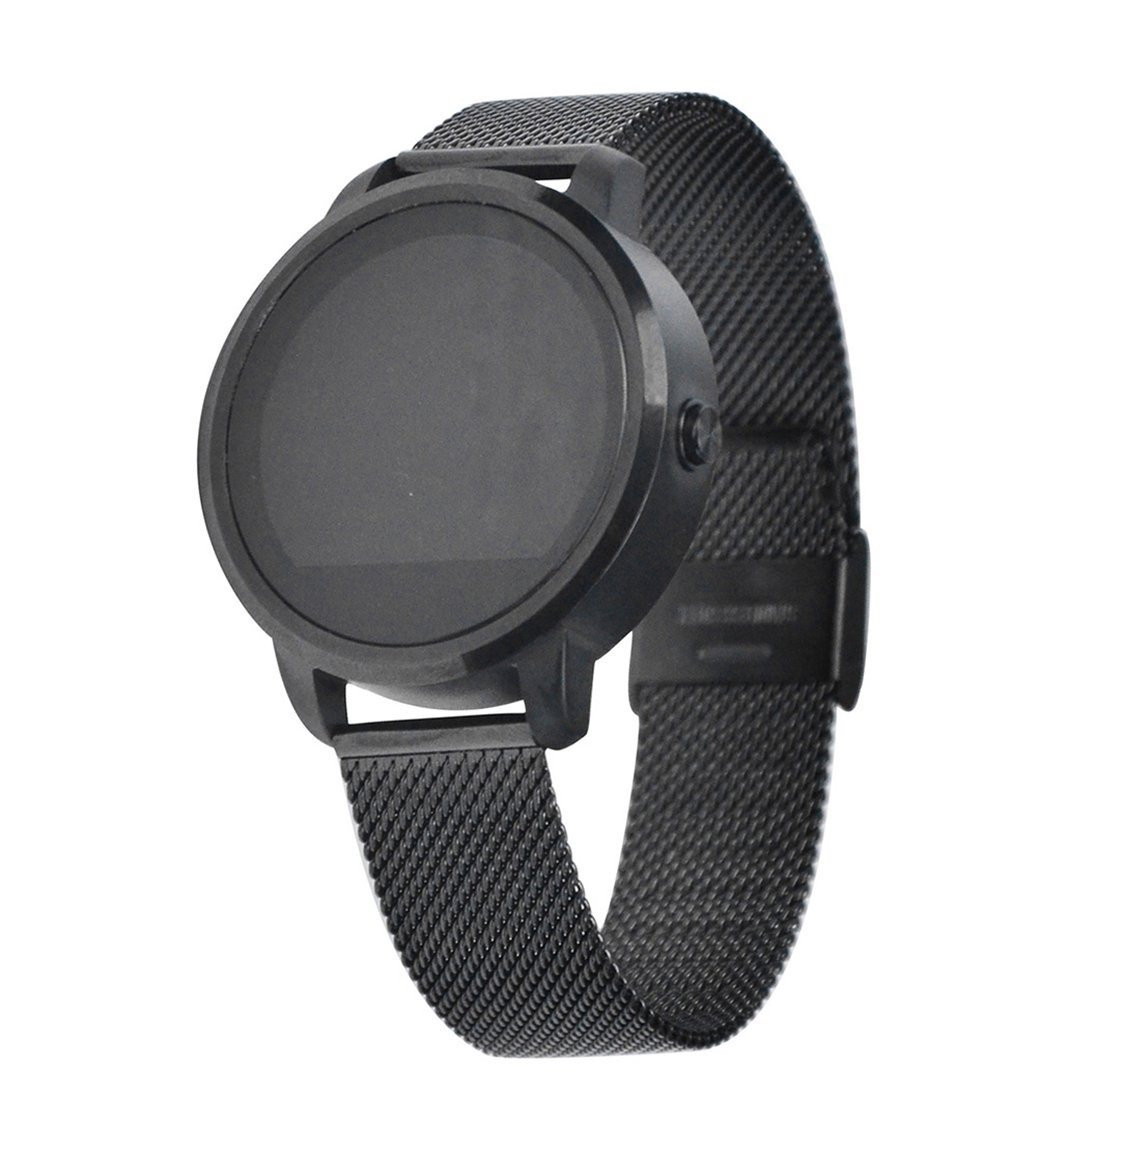 technoaohui Smart Watch Reloj de pulsera Tracker Reloj/Anti ...